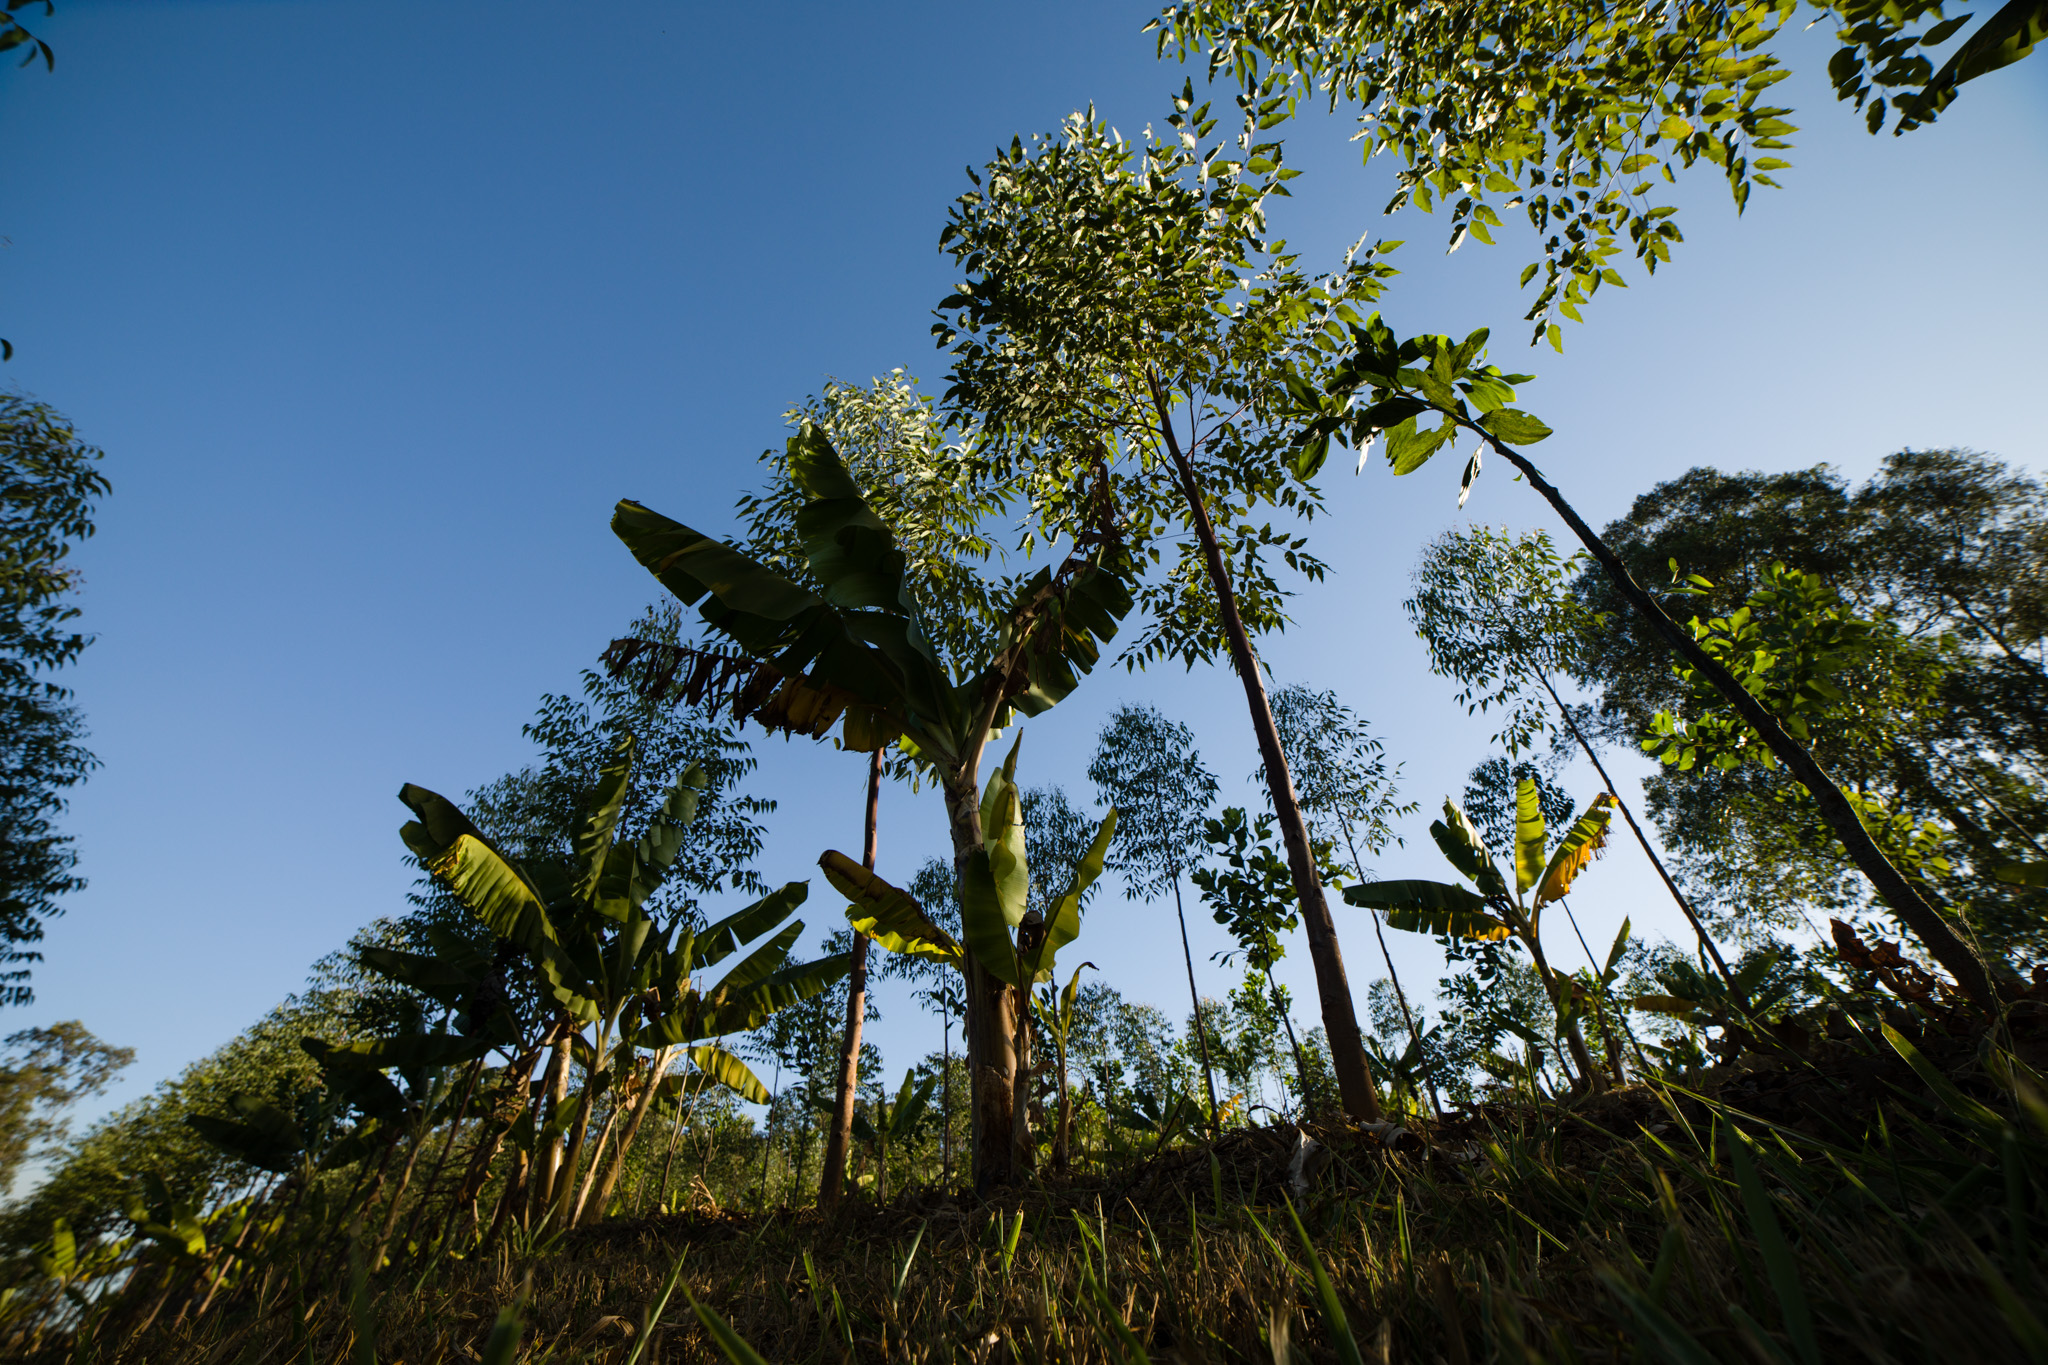 Viewed from below, a row of thin trunk trees. At the base of these trees, some smaller plants are growing. In the background are some other scattered trees. The sky is blue and cloudless.